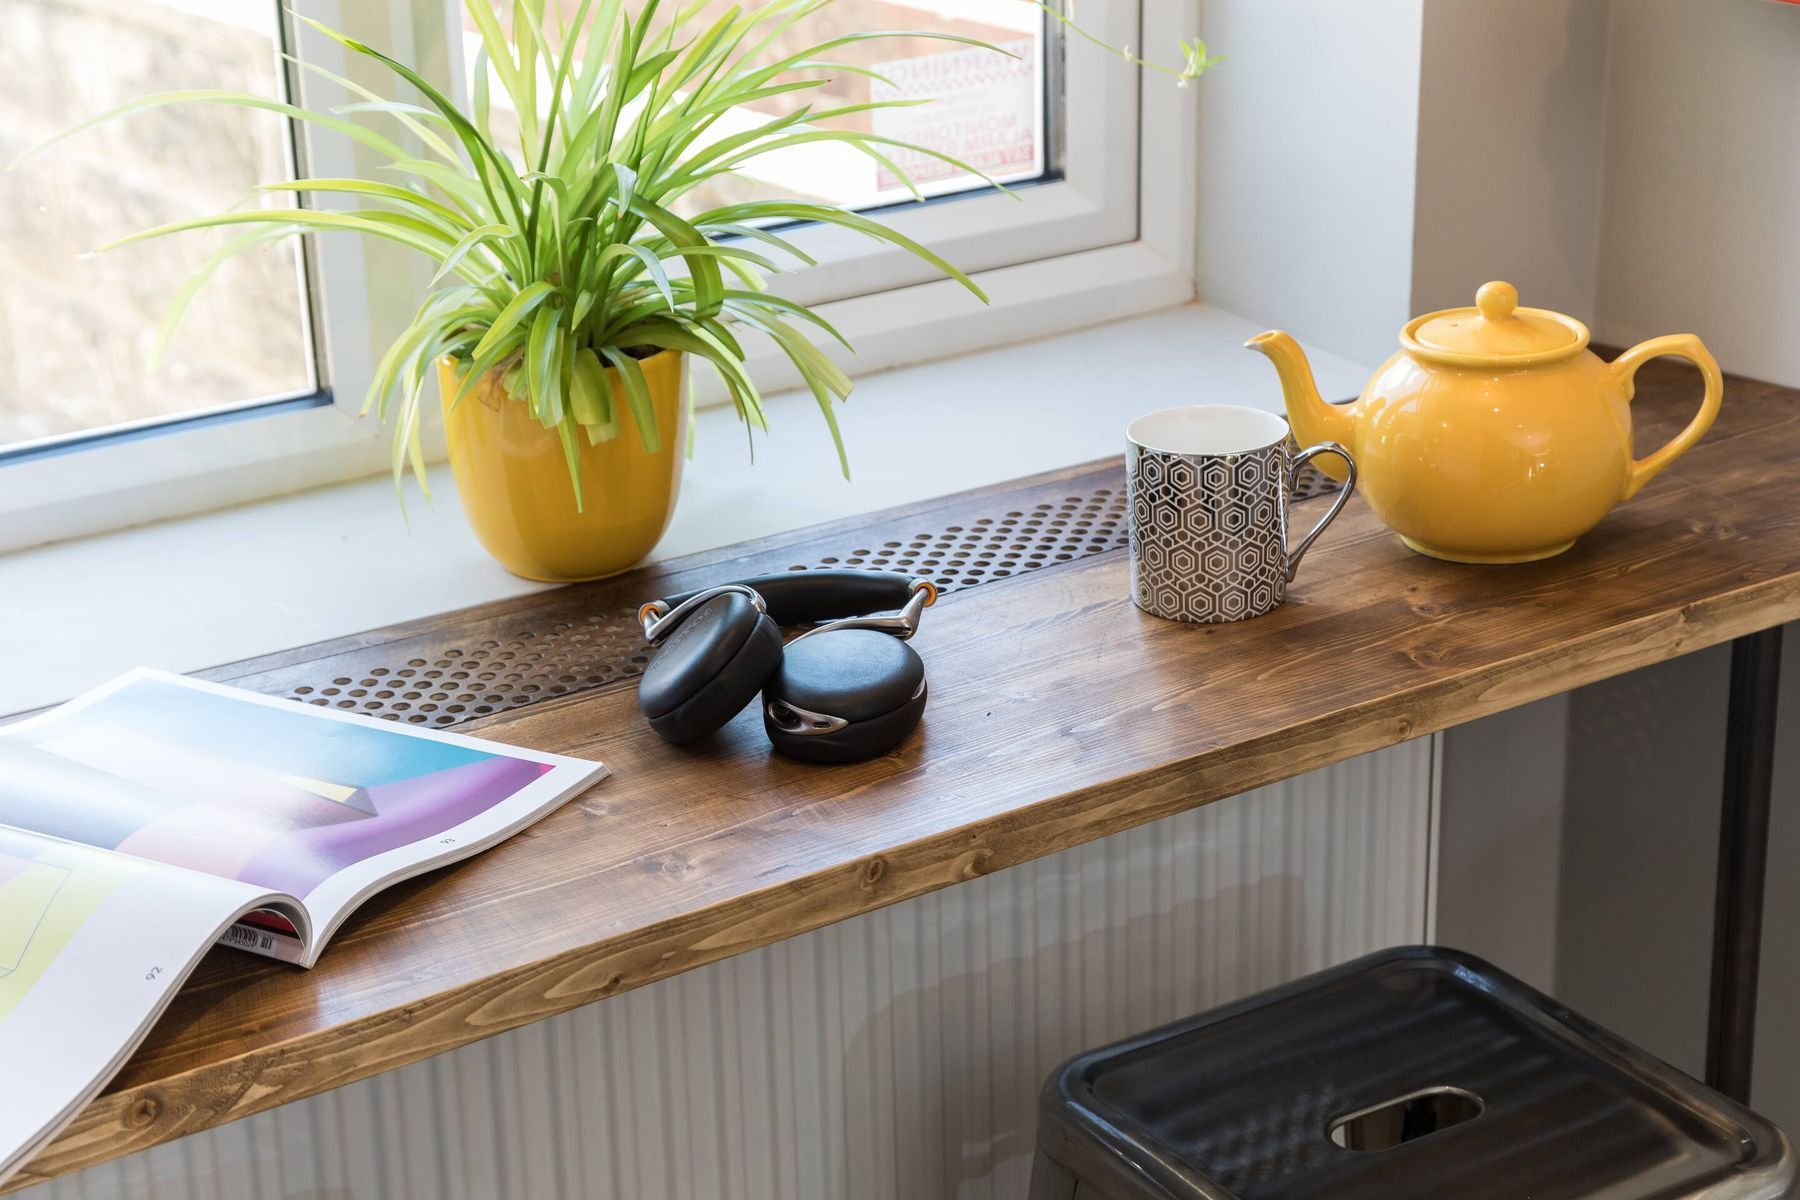 wooden sideboard under window with plant pot, yellow kettle and magazine